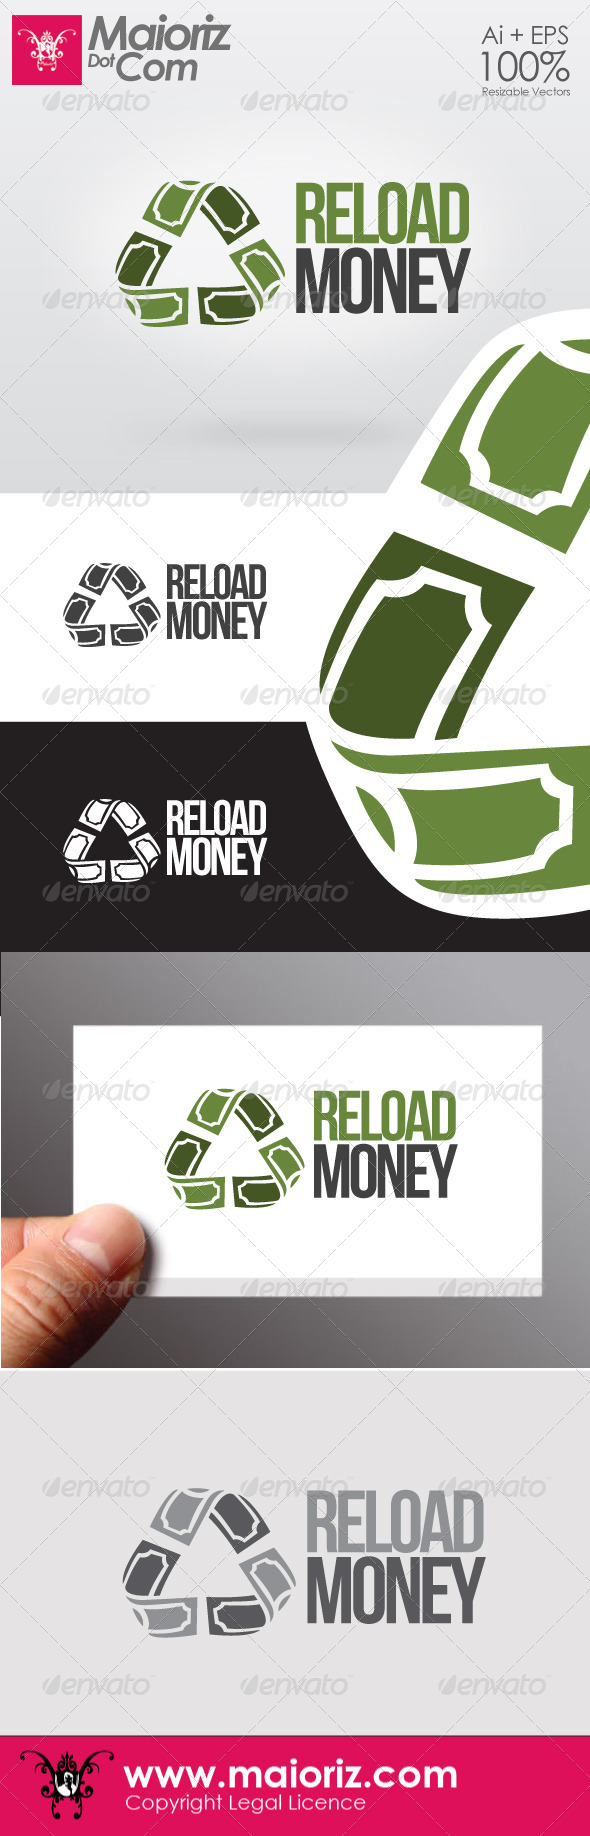 GraphicRiver Reload Money Logo 6591966